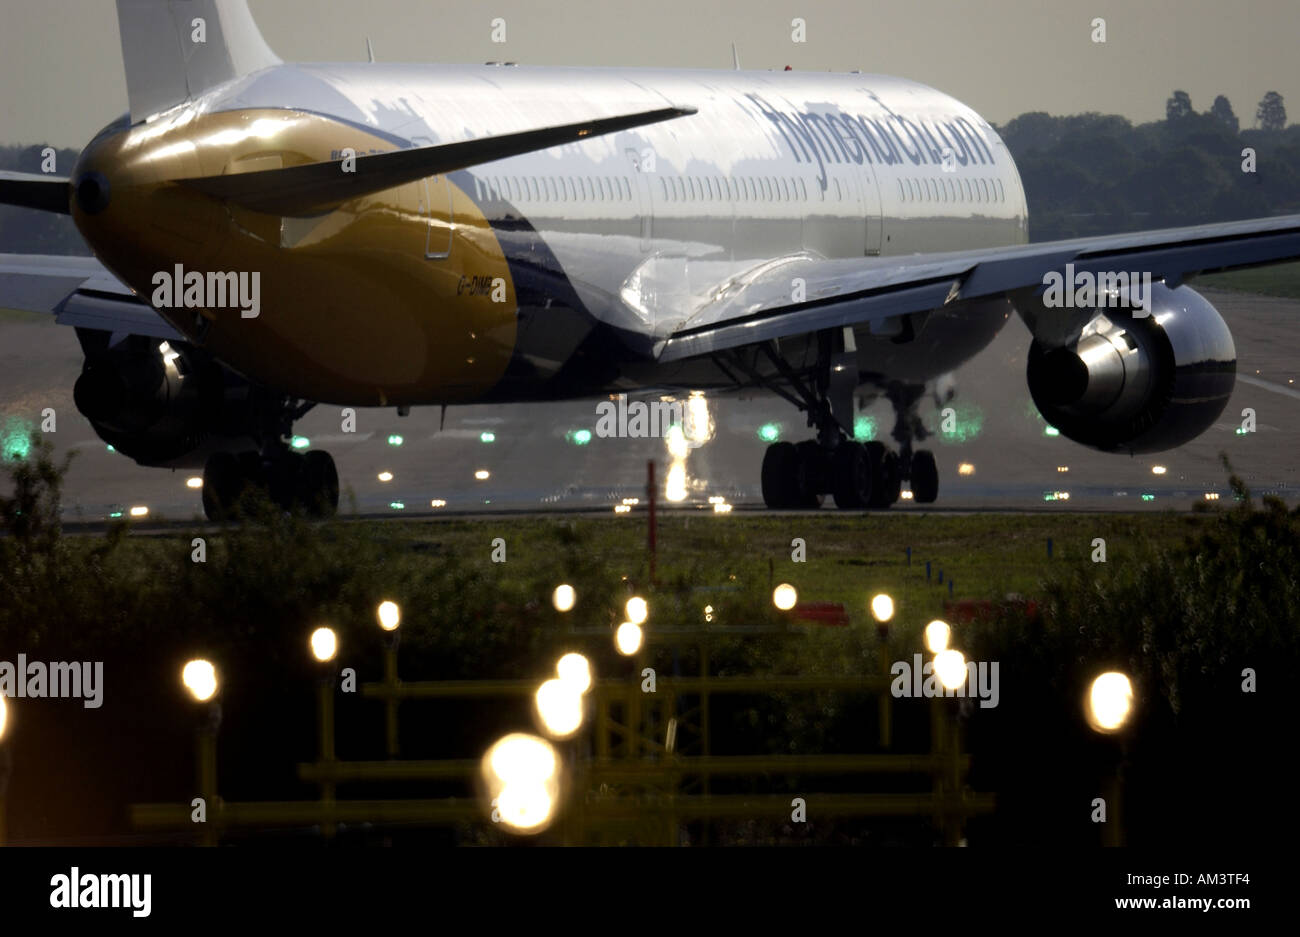 A Monarch Airways Jet plane prepares for takeoff from London Gatwick airport - Stock Image